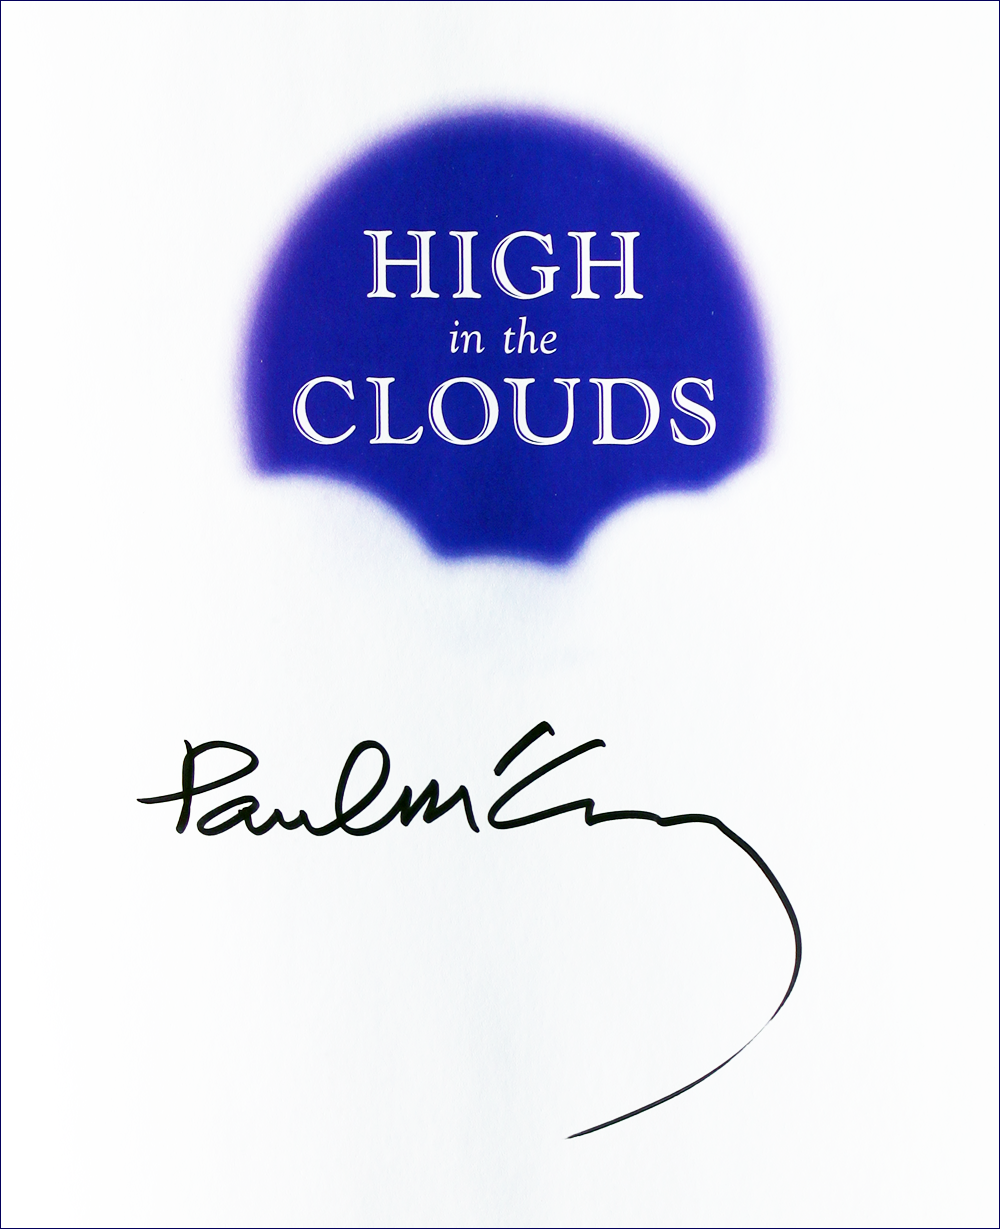 Book - High in the Clouds - Paul McCartney - Inside #1